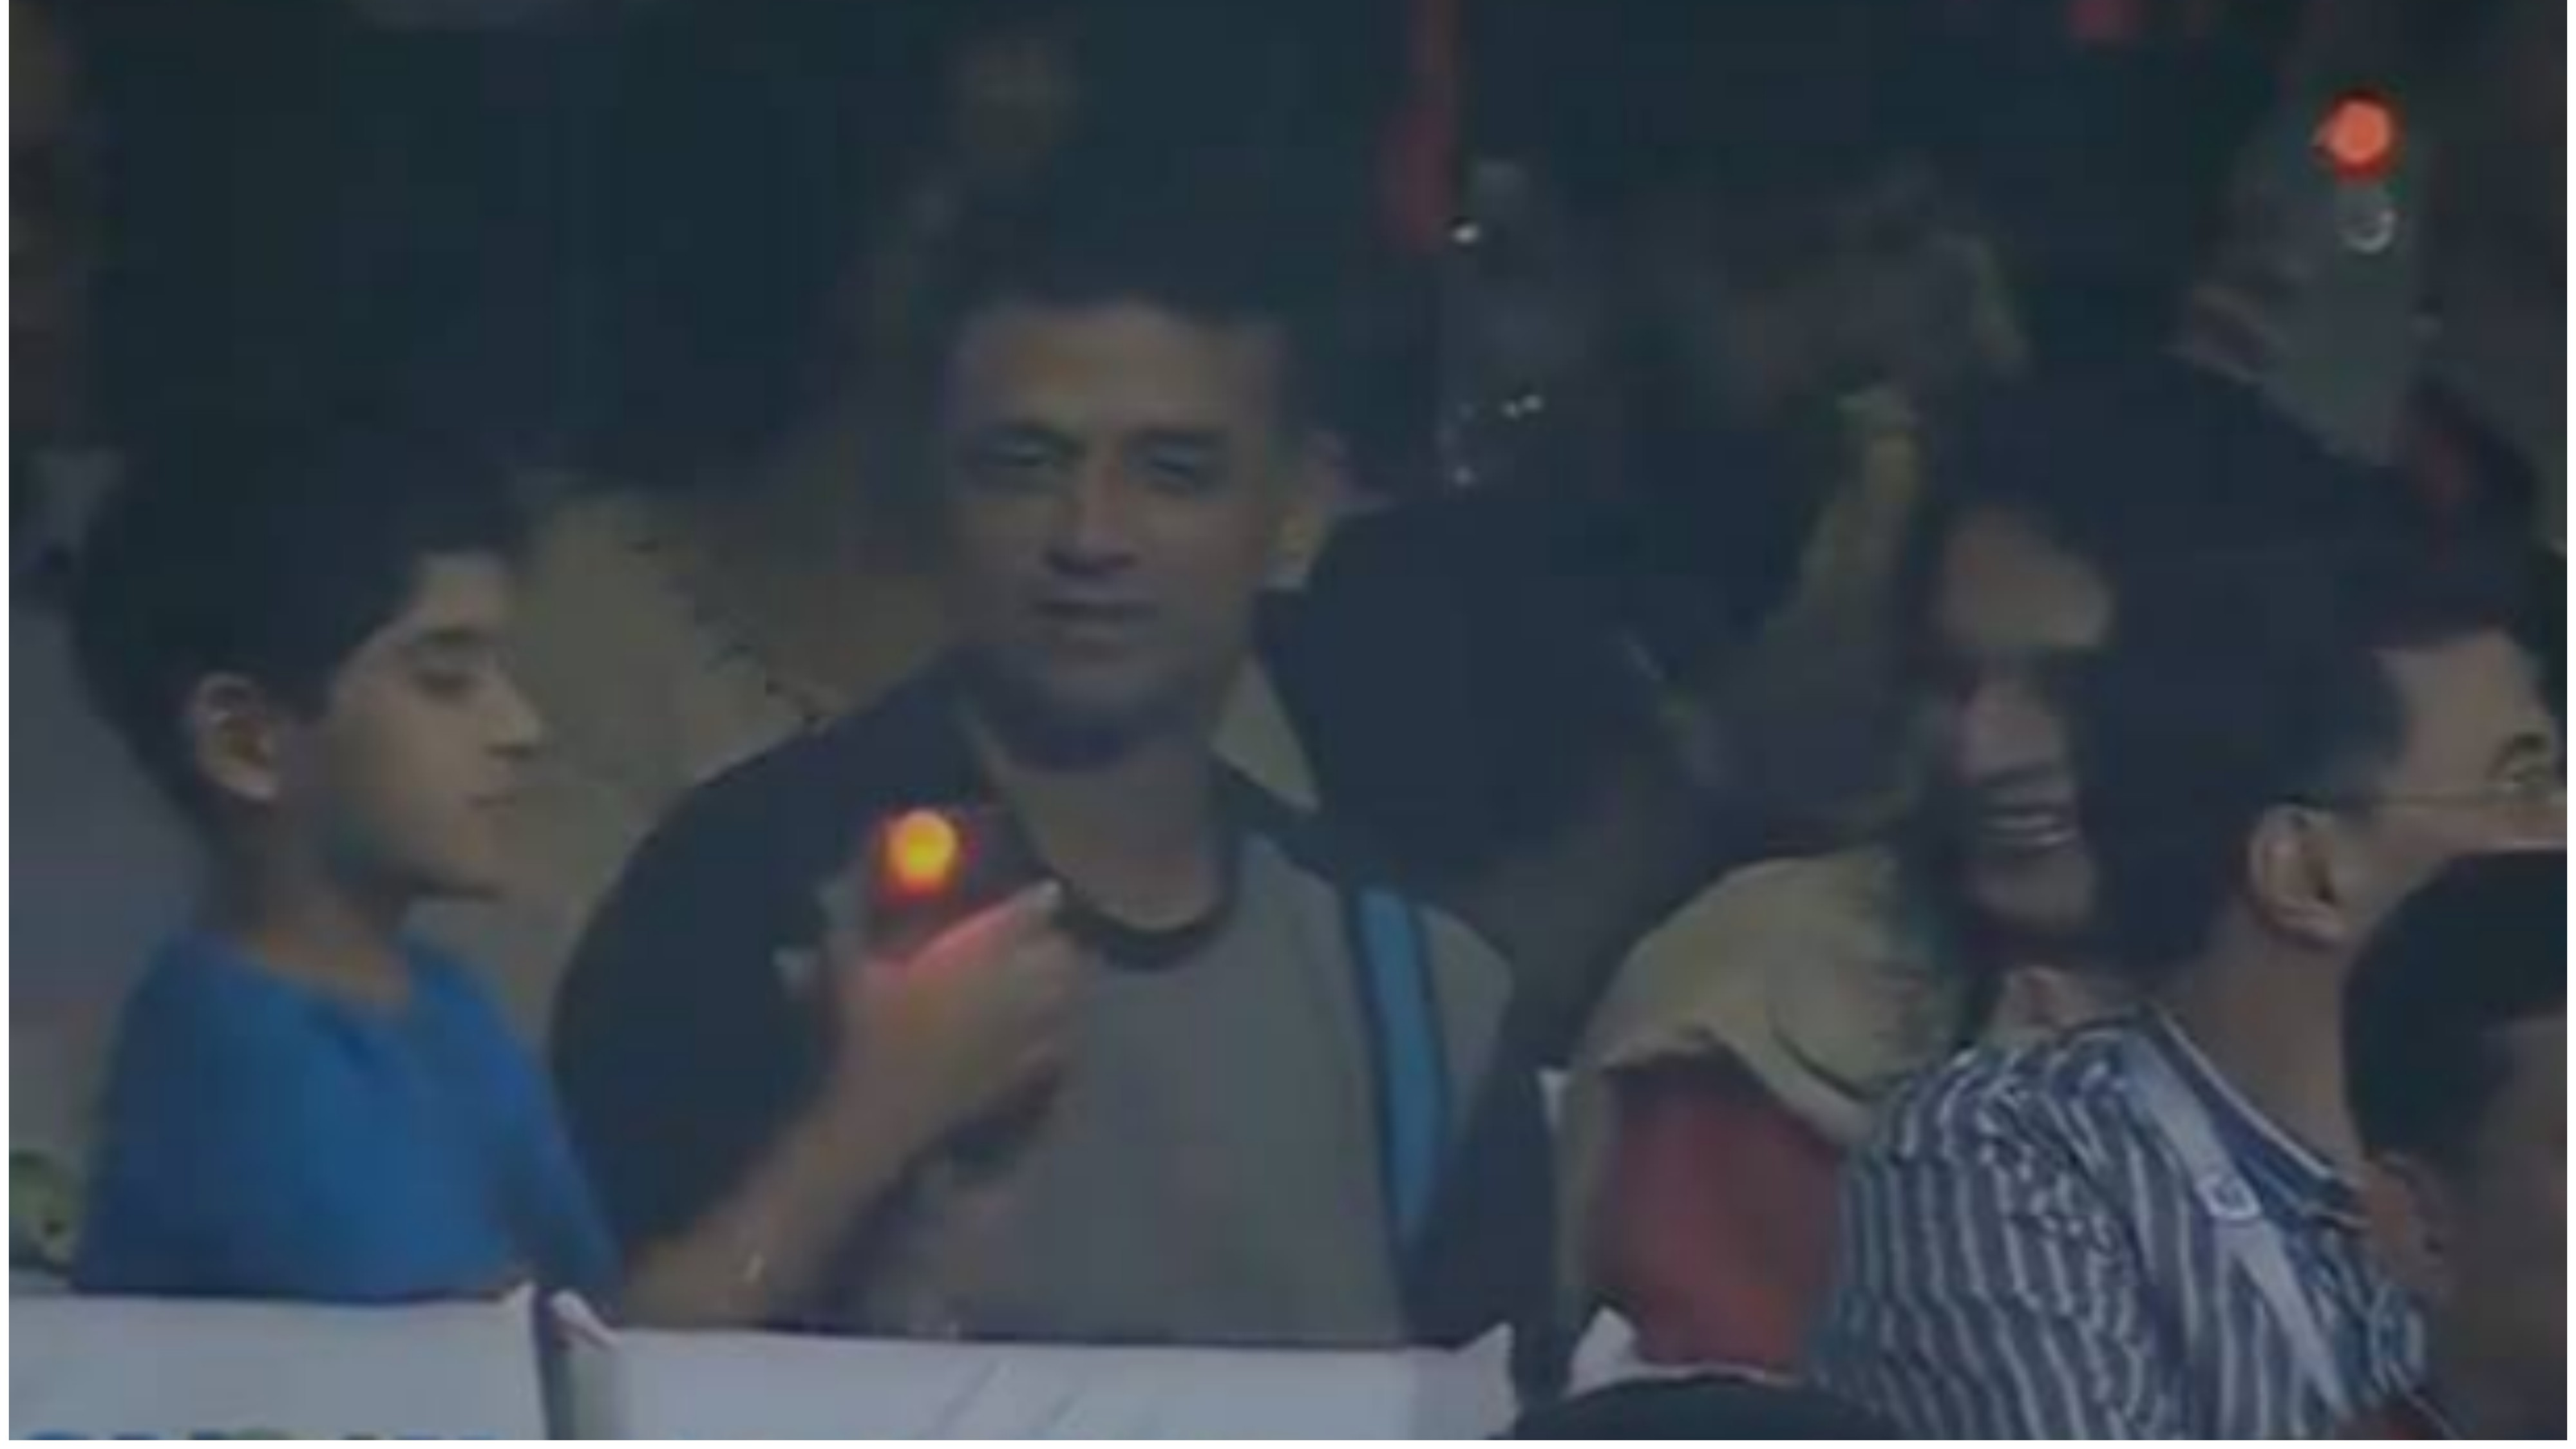 IPL 2018: Watch – Rahul Dravid enjoys the RCB-KKR match from the normal stands